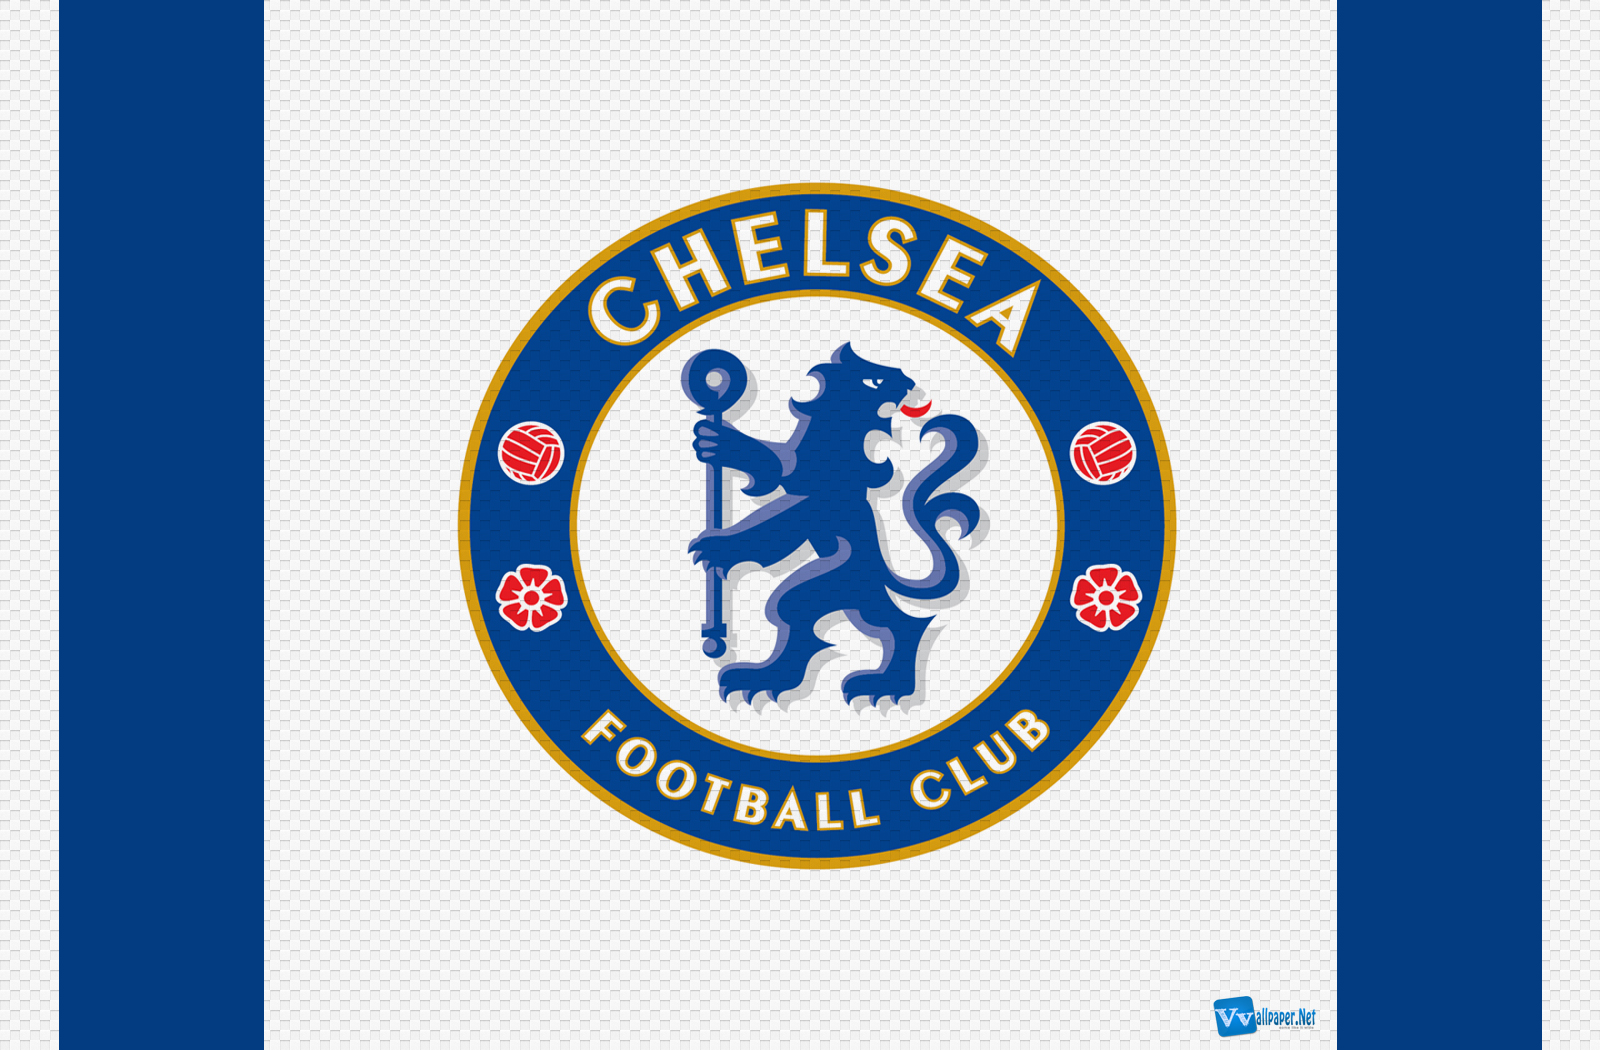 Central wallpaper chelsea football club logo hd wallpapers chelsea fc logo soccer wallpaper in hd voltagebd Gallery